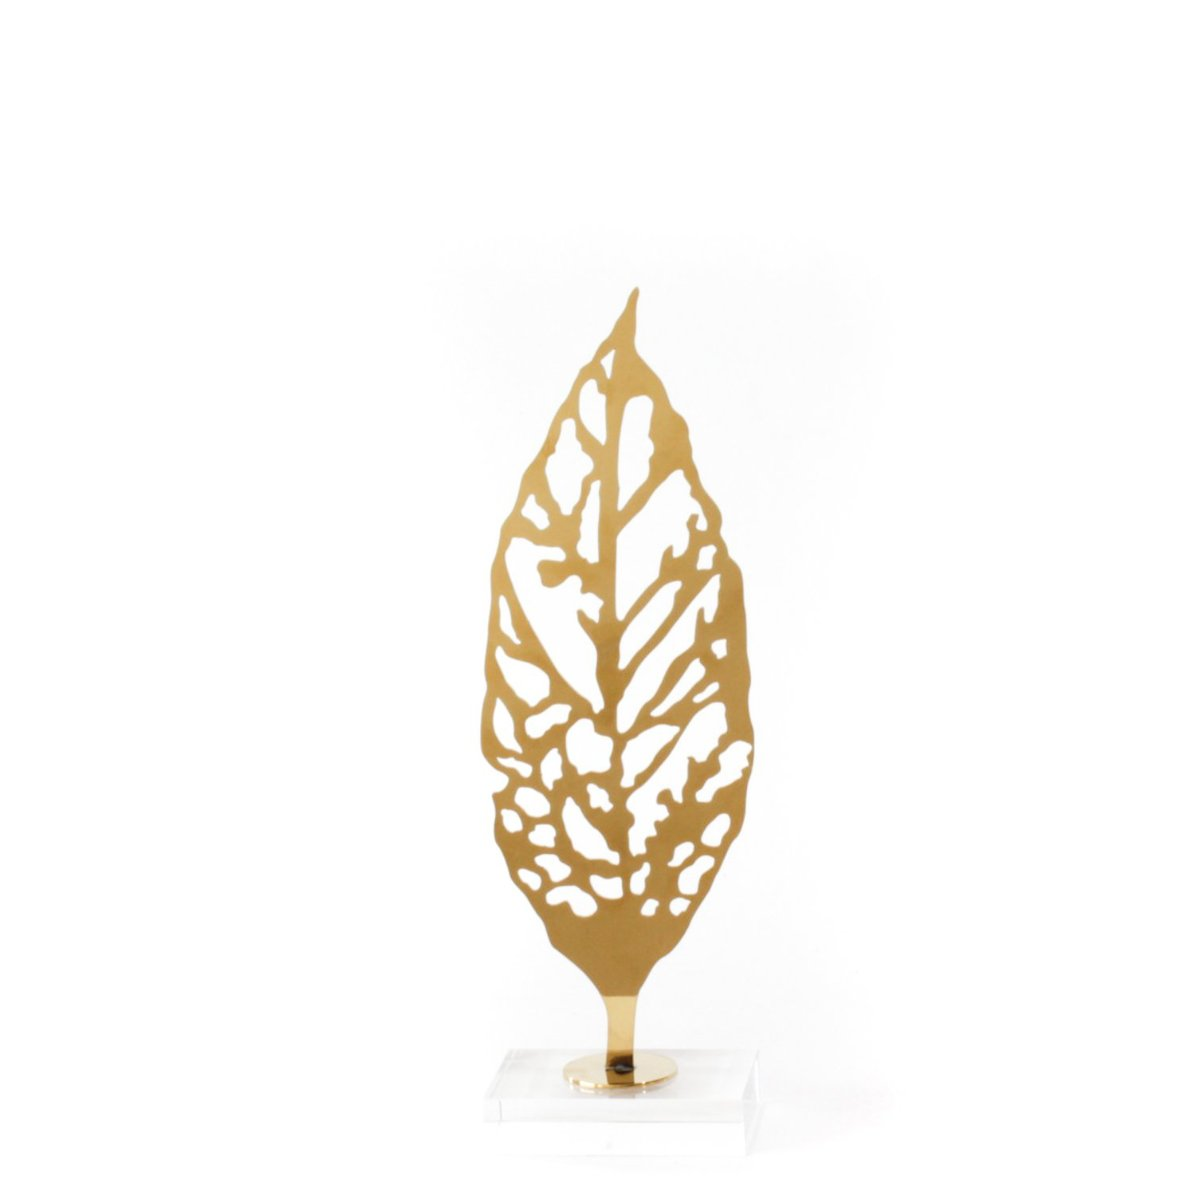 Gold Leaf Sculpture, crystal glass base, stainless steel , small size